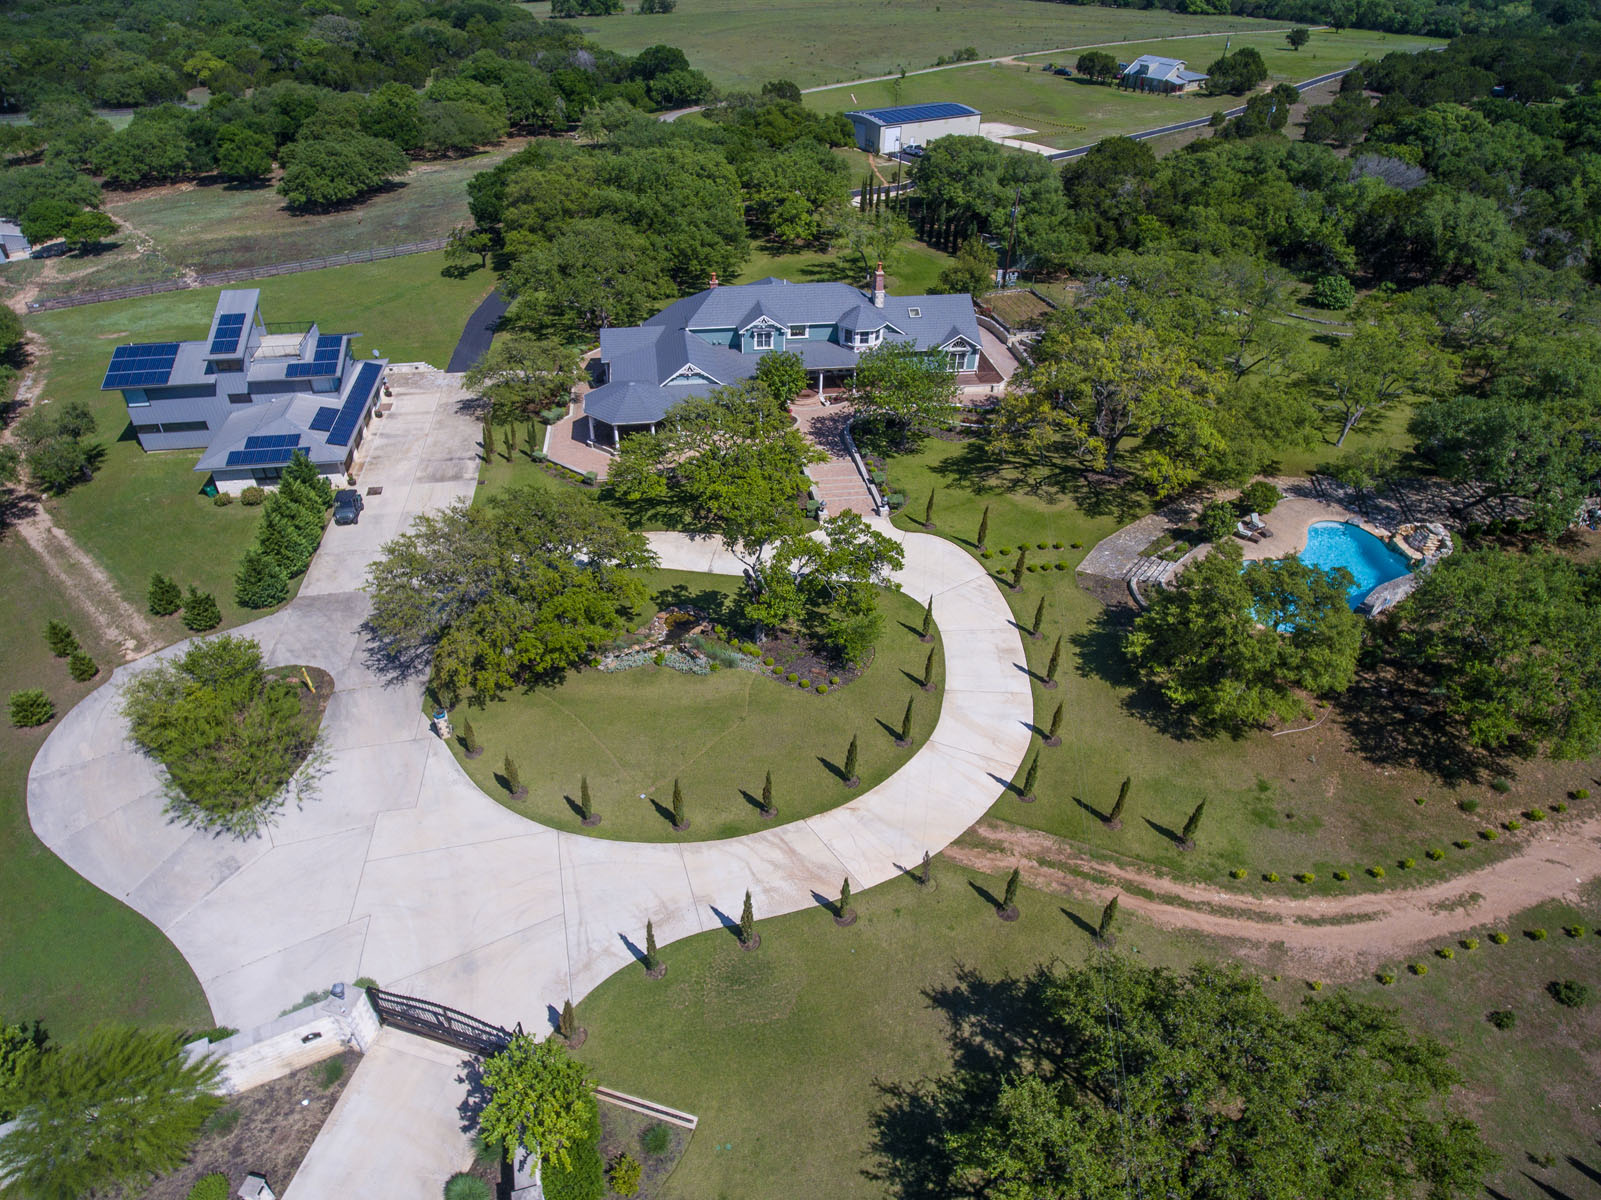 Single Family Home for Sale at The Texas Hill Country Manor 690 Autumn Ln Dripping Springs, Texas, 78620 United States